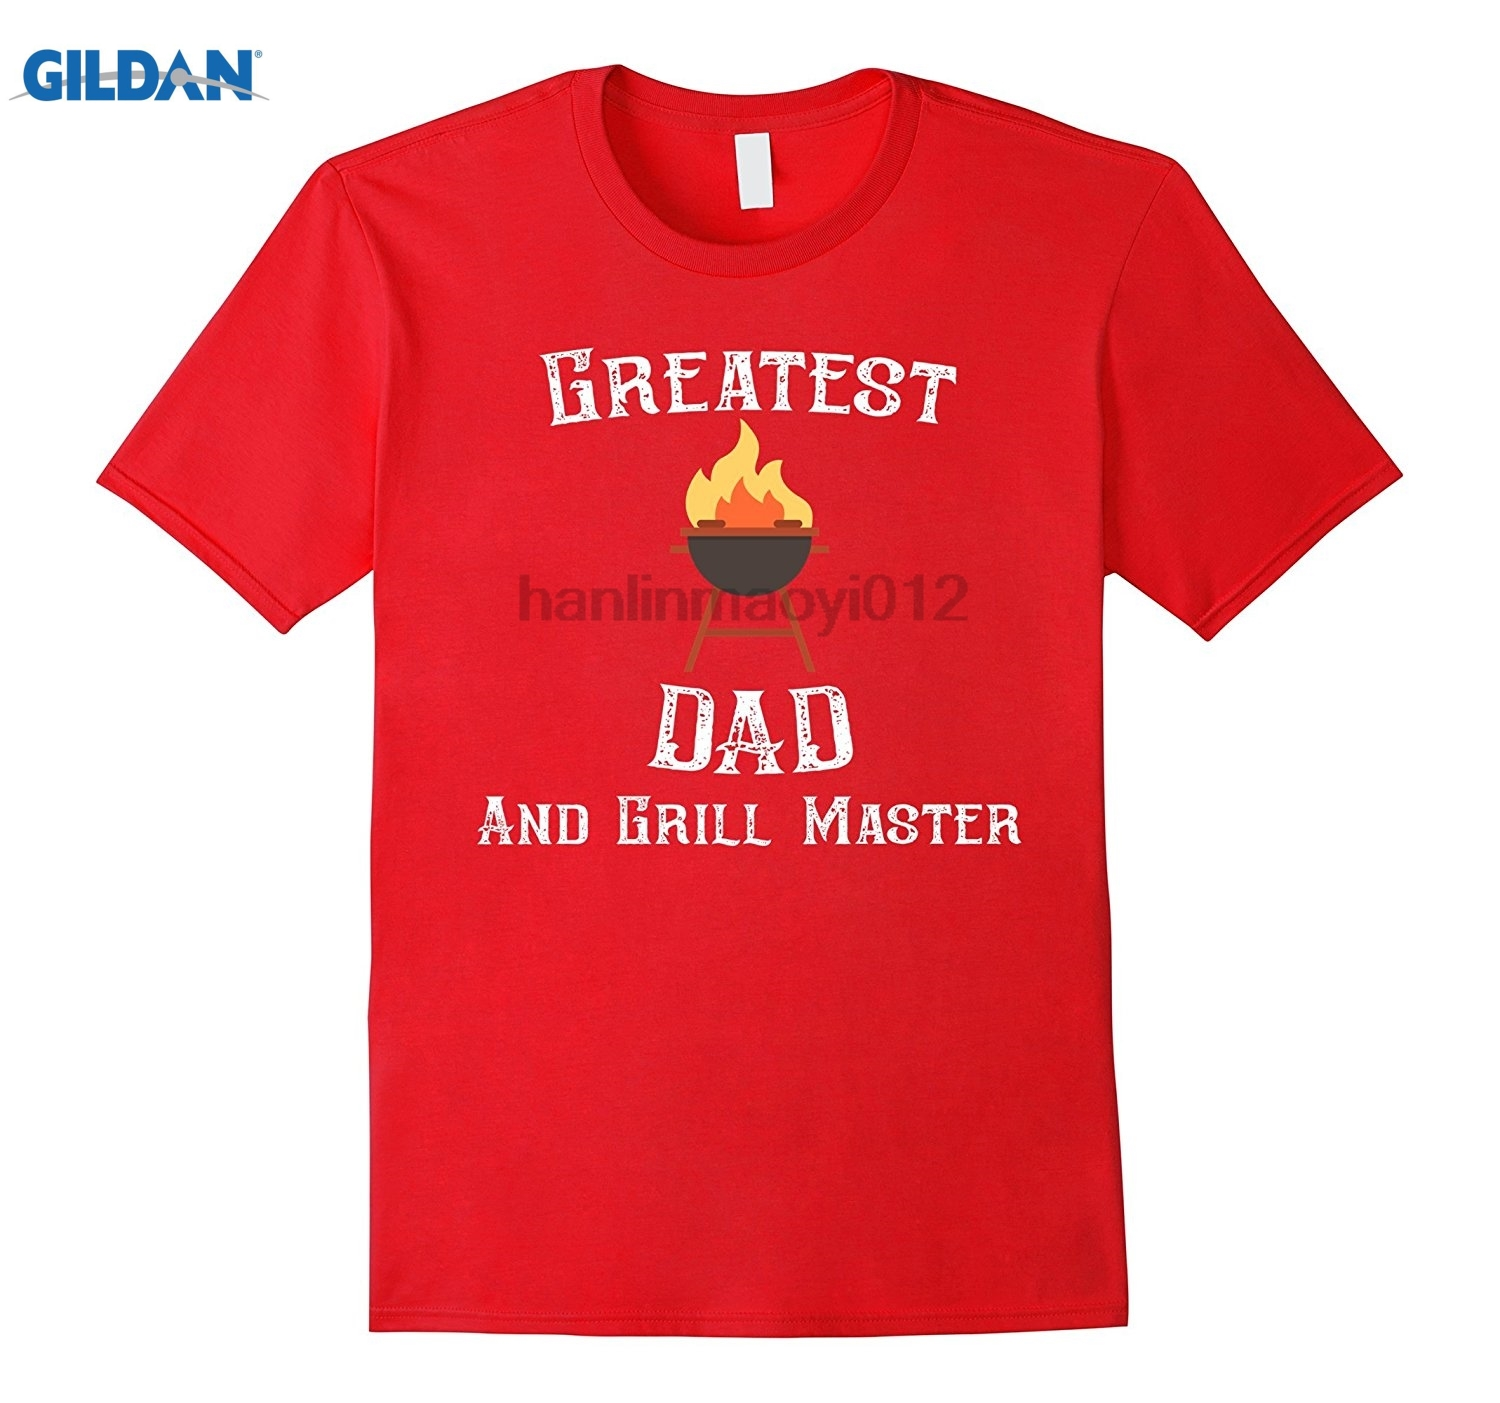 GILDAN Mens Greatest Dad And Grill Master Fathers Day Vintage T-Shirt Latest 2018 Fashion T-Shirt MensPrint Shirt T-Shirt